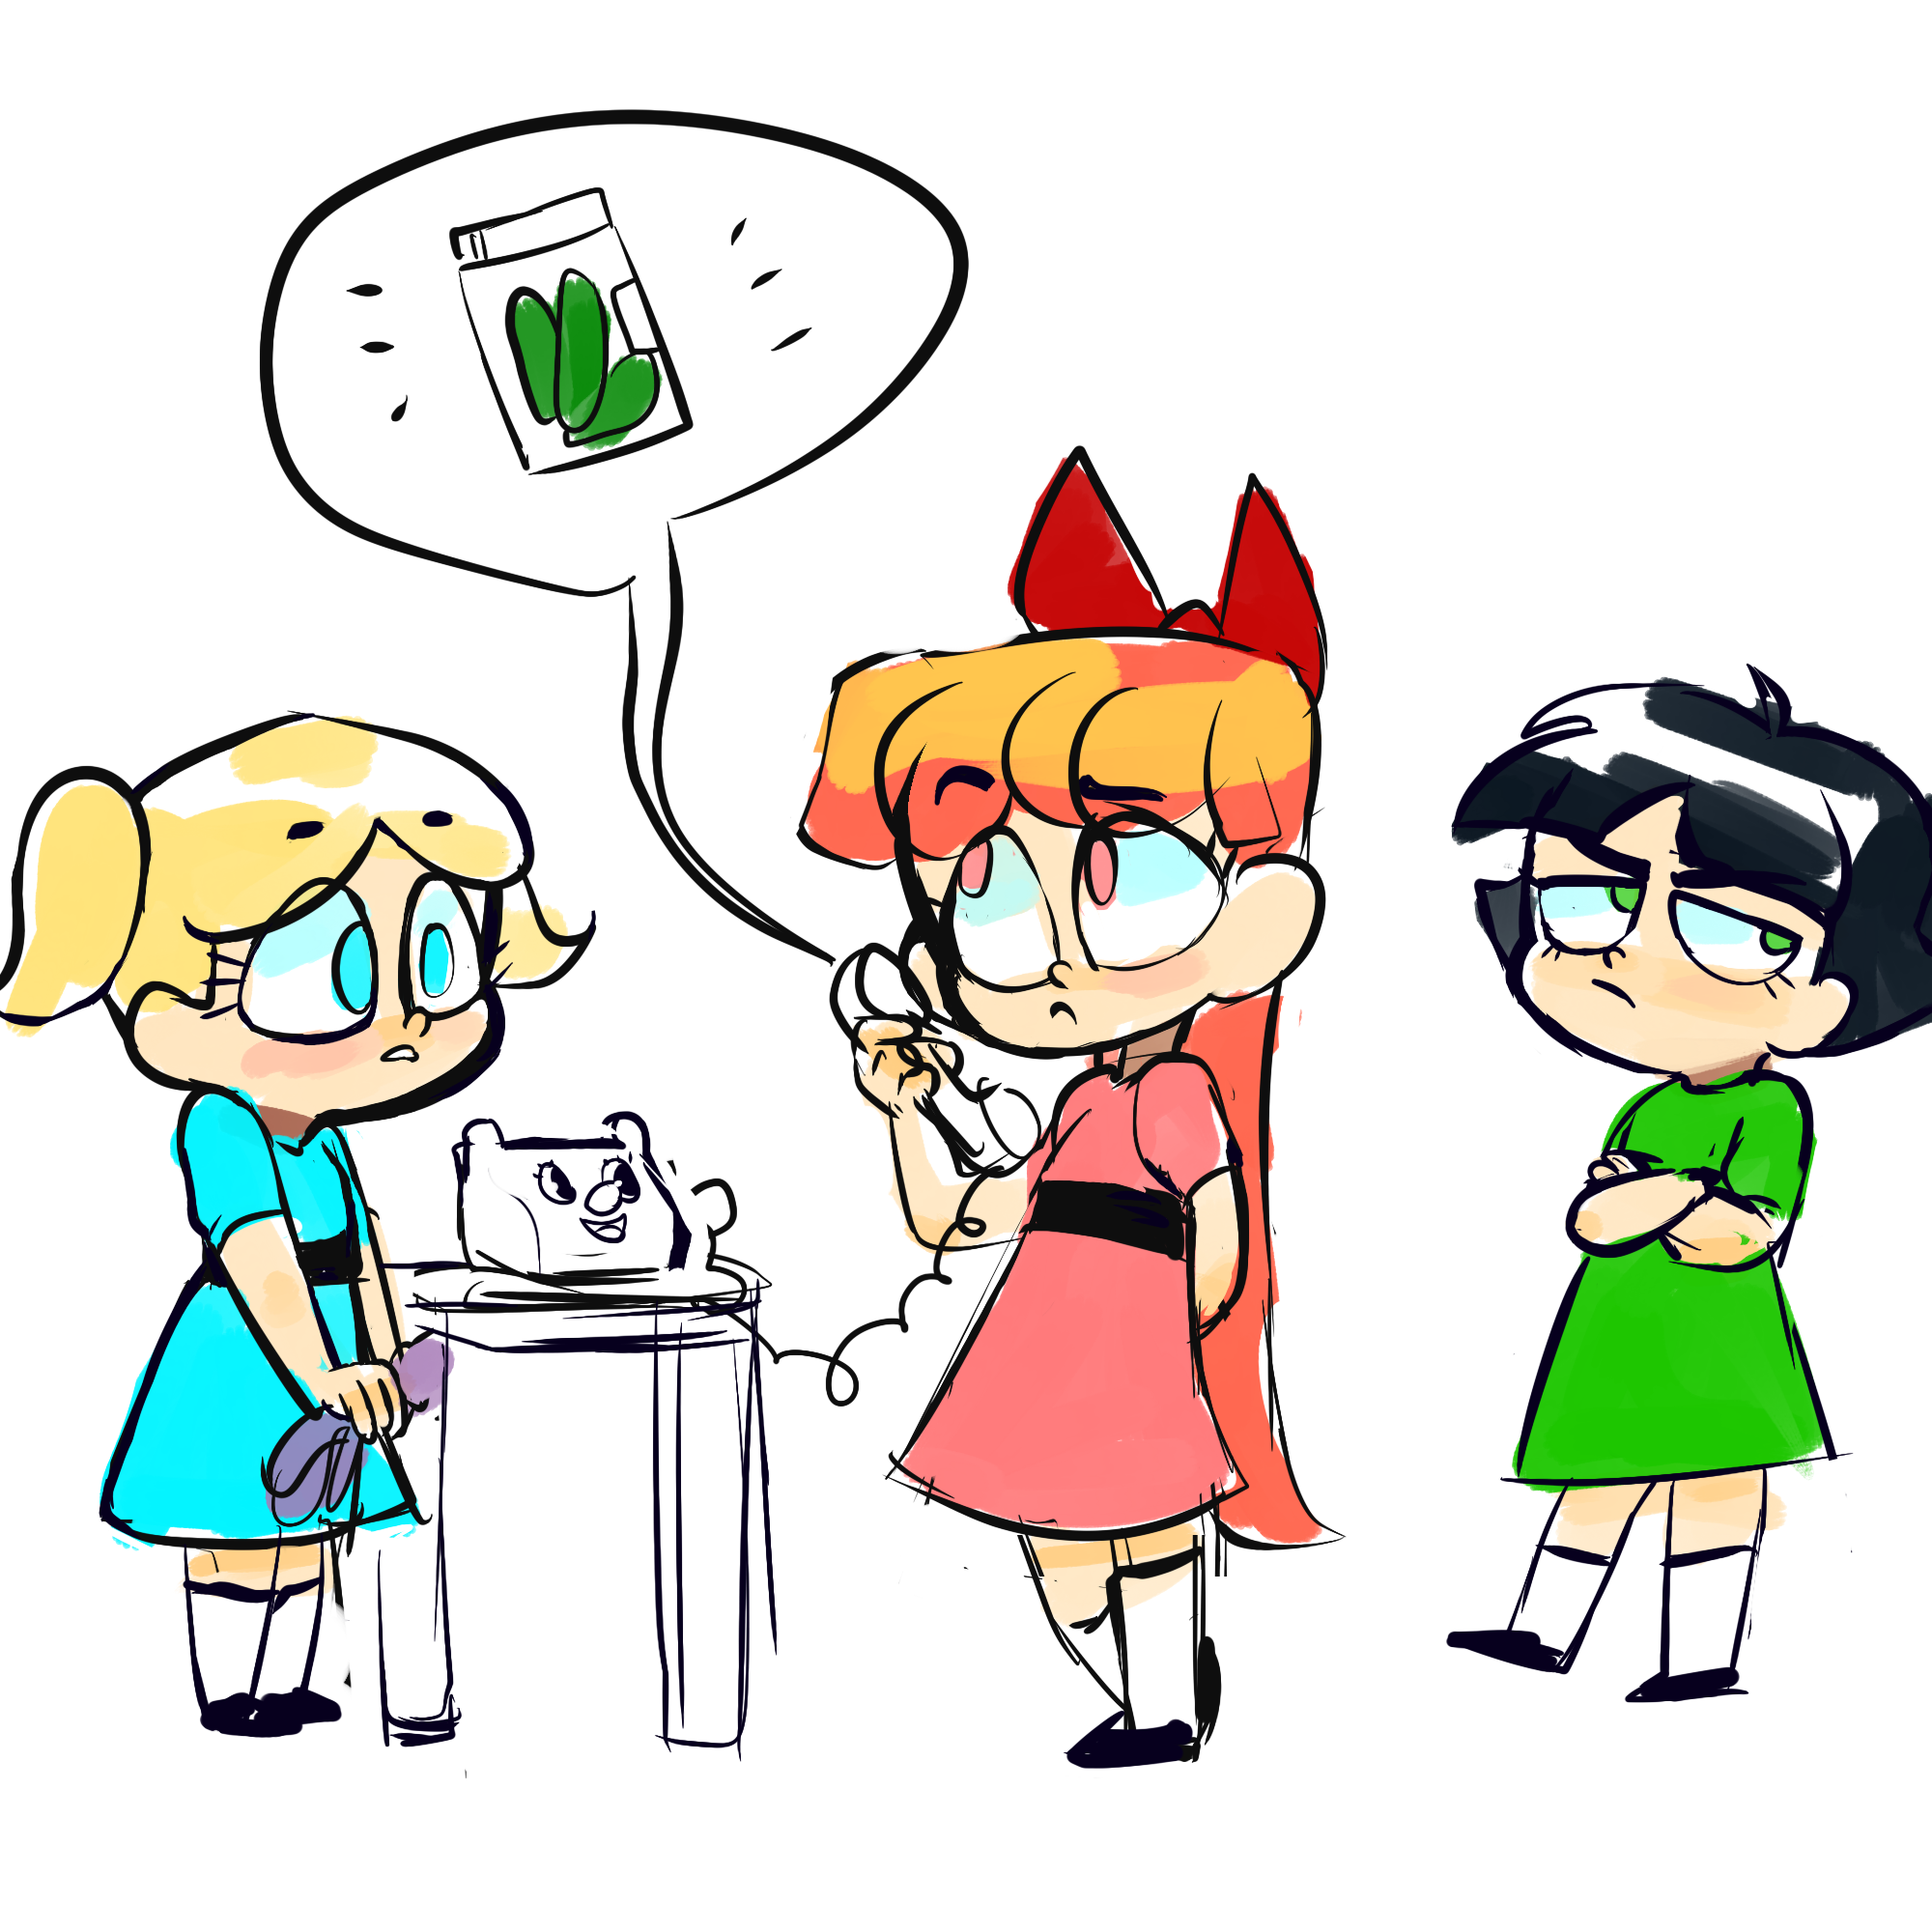 PPG! by wunking